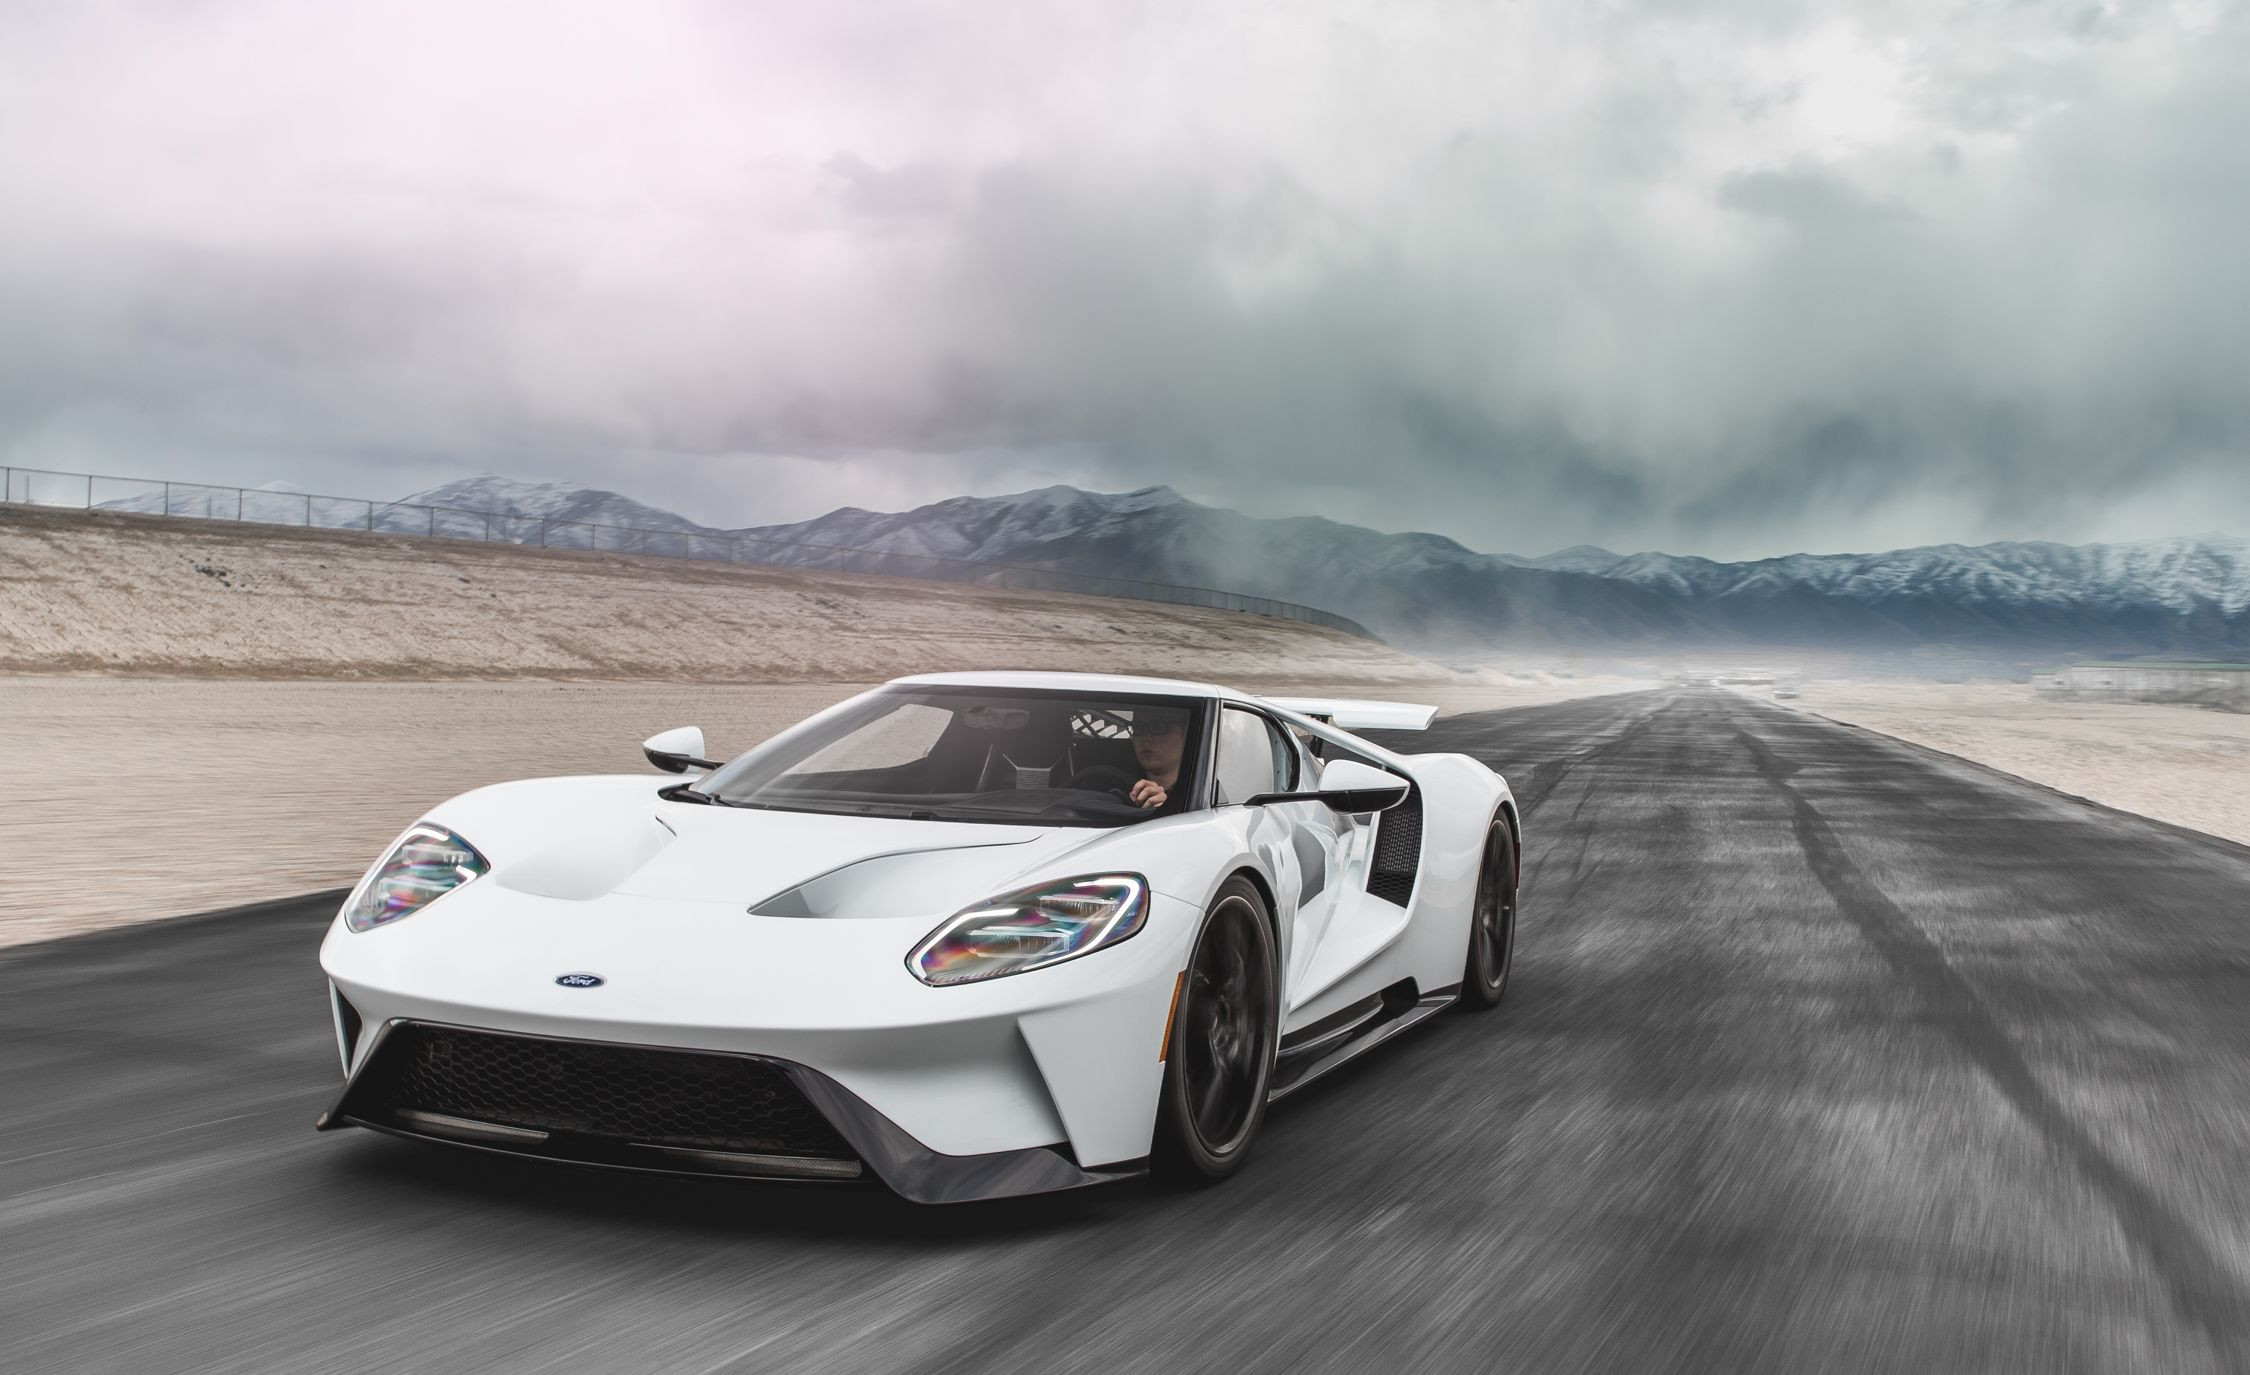 2017 Ford GT Photo Gallery